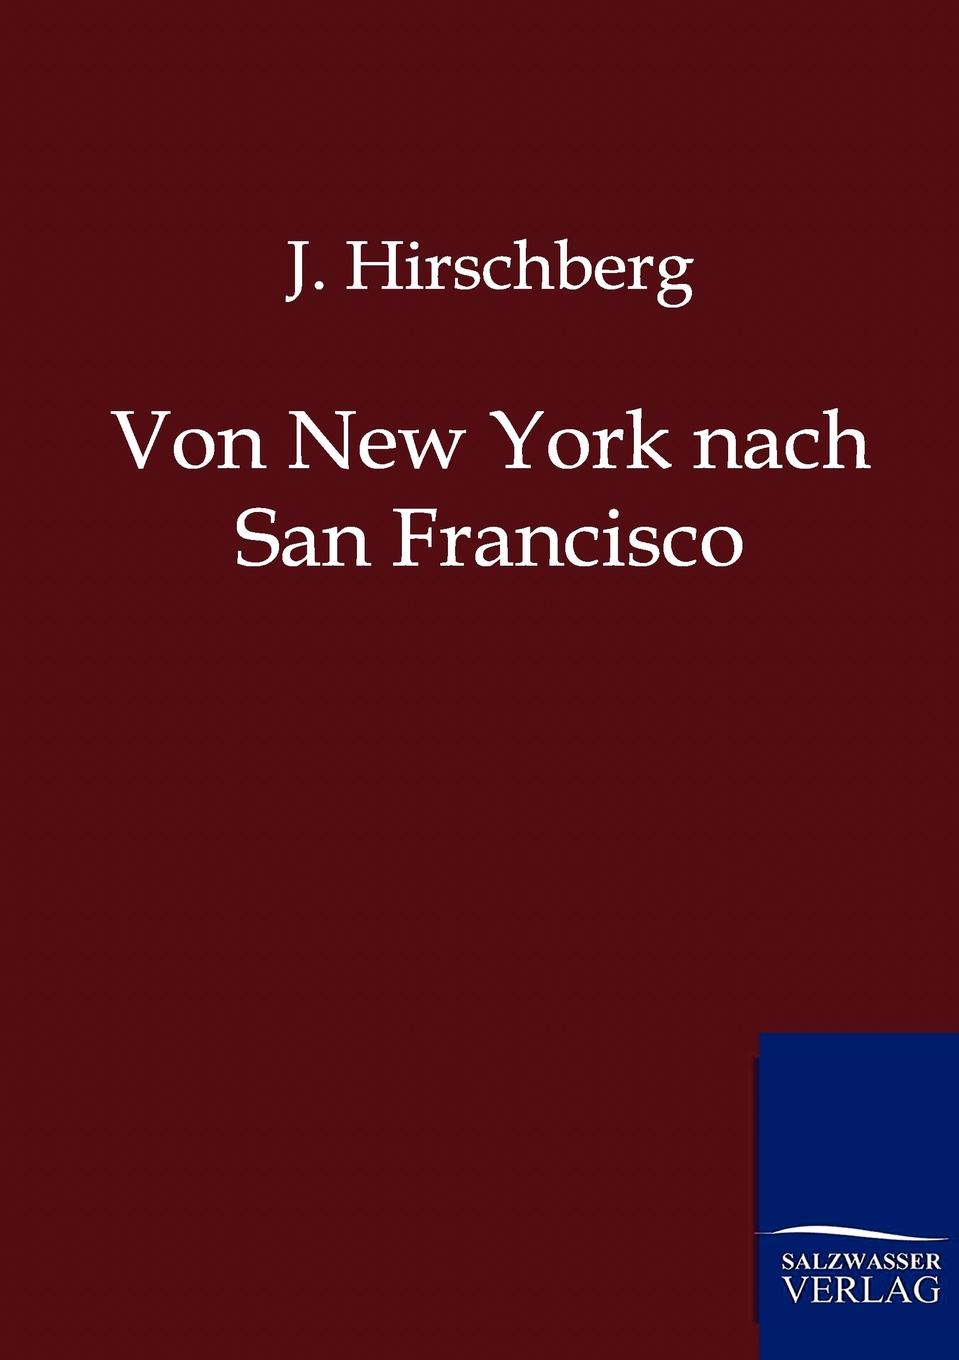 J. Hirschberg Von New York nach San Francisco